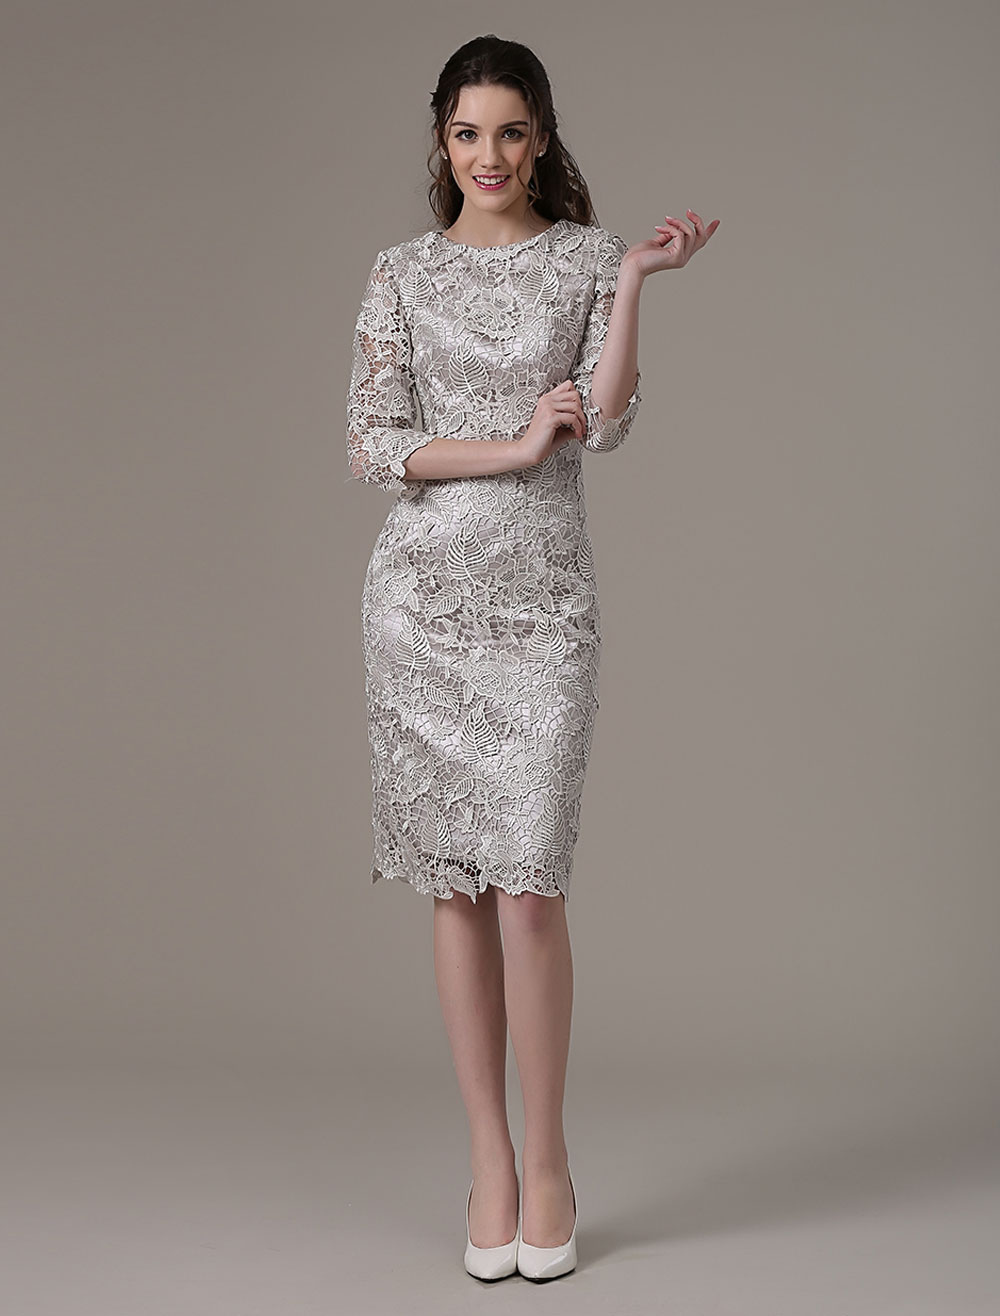 silver cocktail dress for wedding